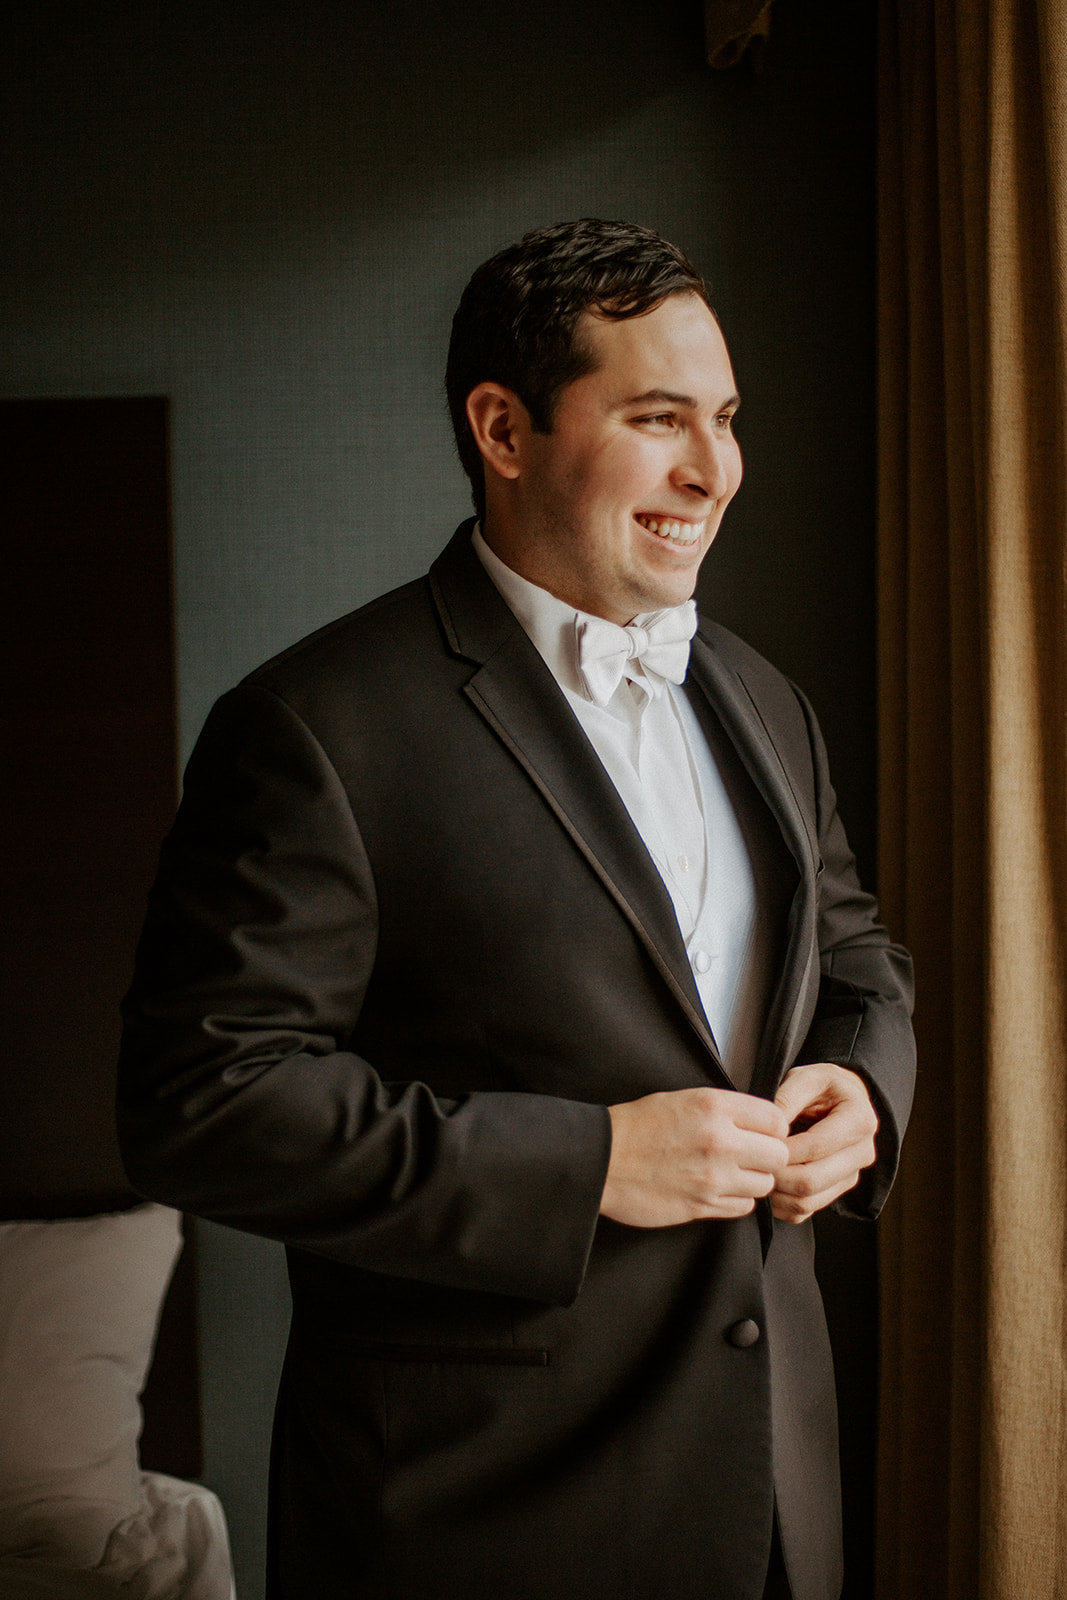 Groom tying his suit coat during his Minneapolis wedding